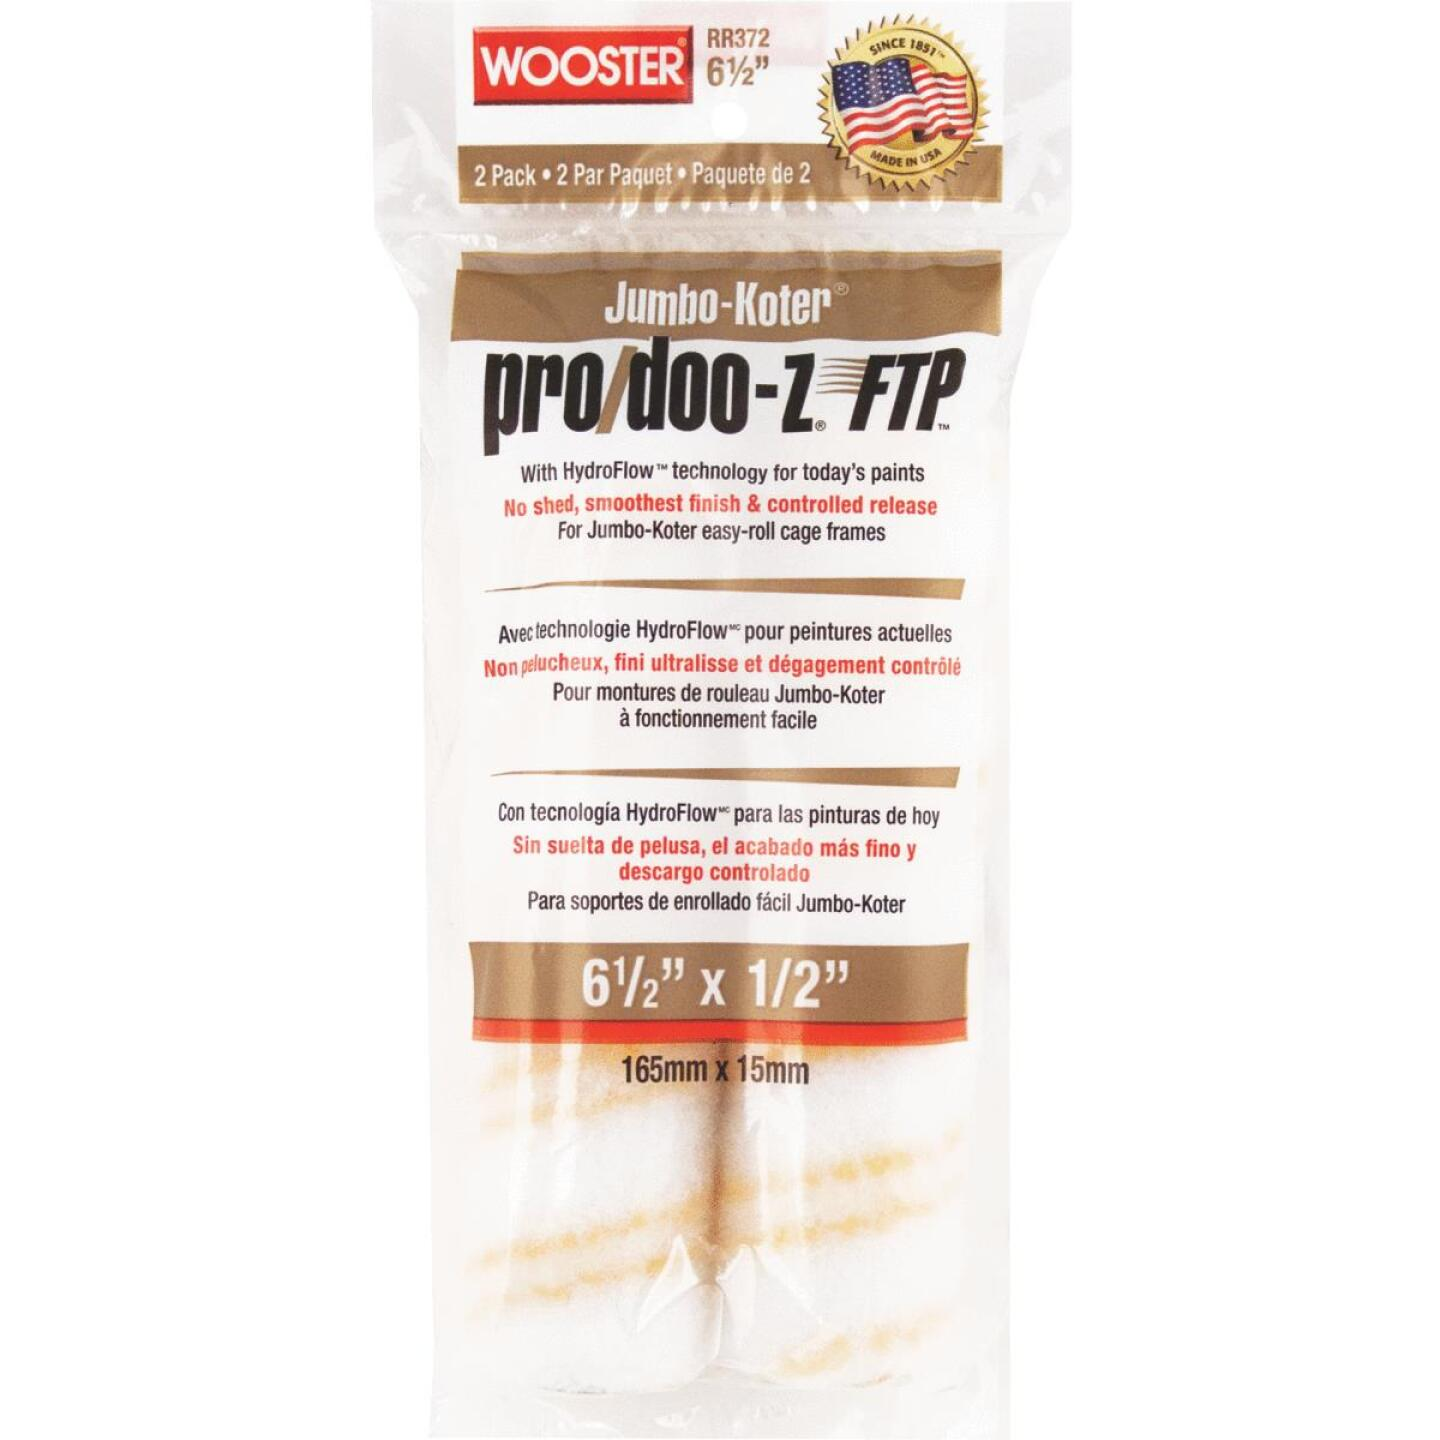 Wooster Jumbo-Koter Pro/Doo-Z FTP 6-1/2 In. x 1/2 In. Mini Woven Fabric Roller Cover (2 Pack) Image 1